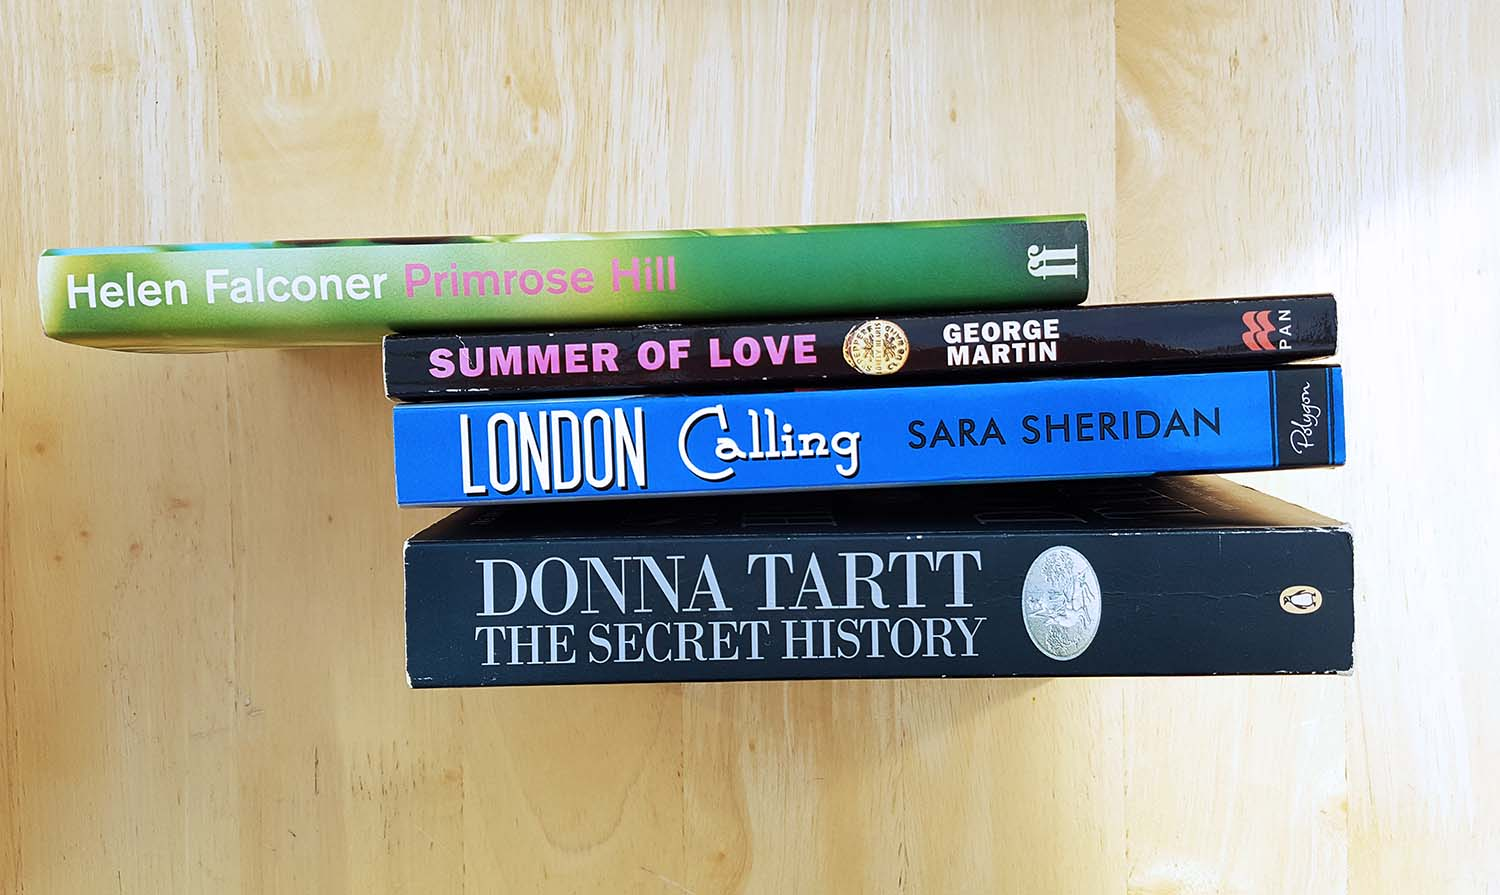 Book Spine Poetry, inspired by Nina Katchadourian